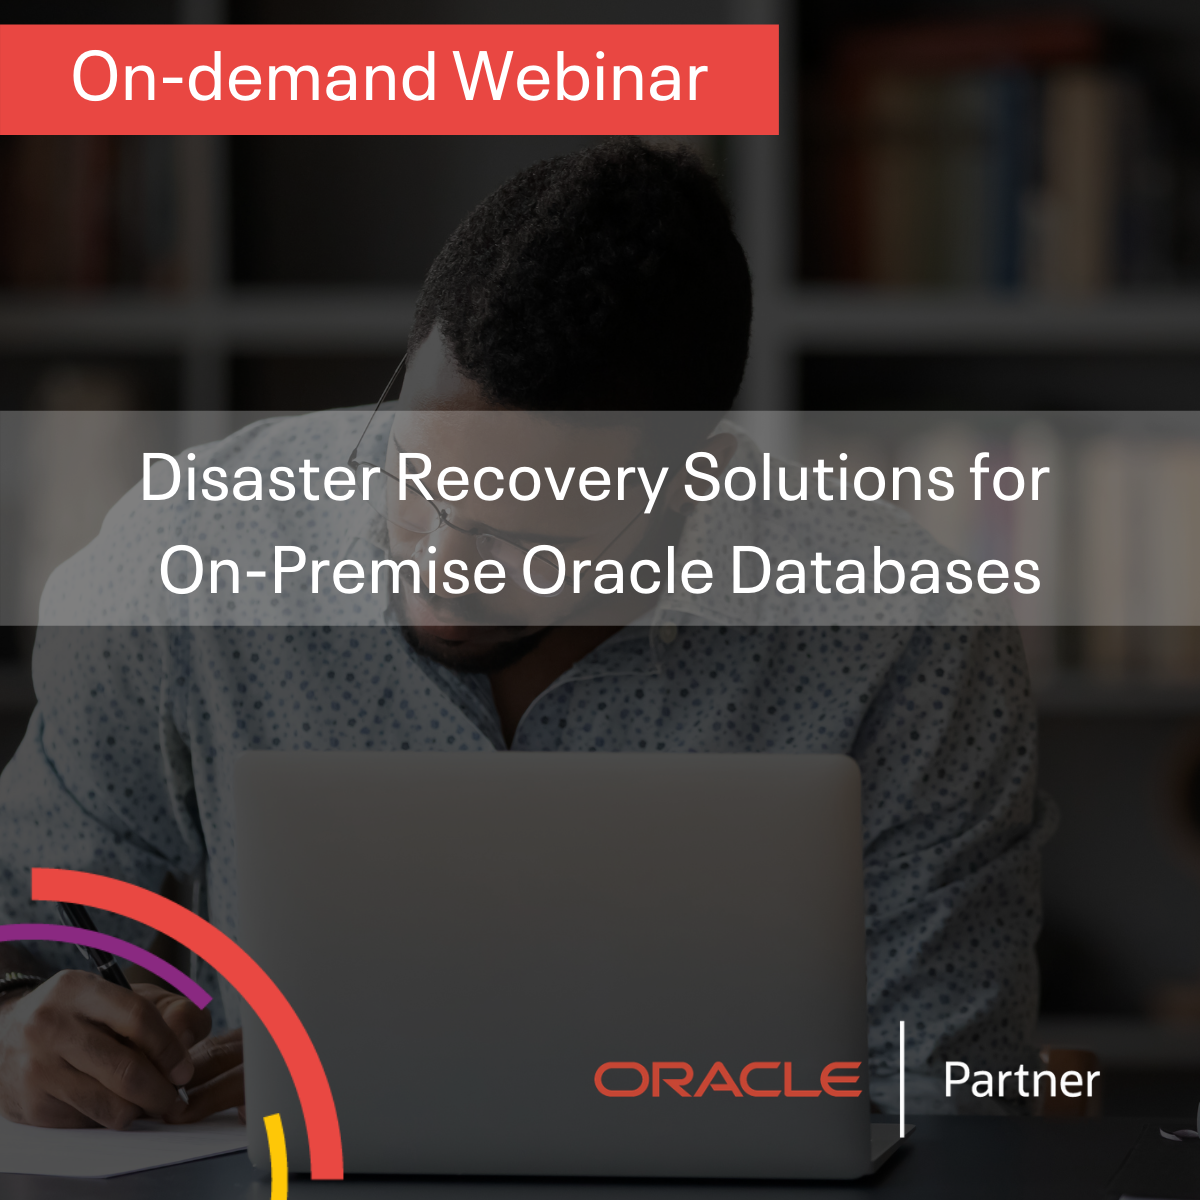 Disaster Recovery Solutions for On-Premise Oracle Databases